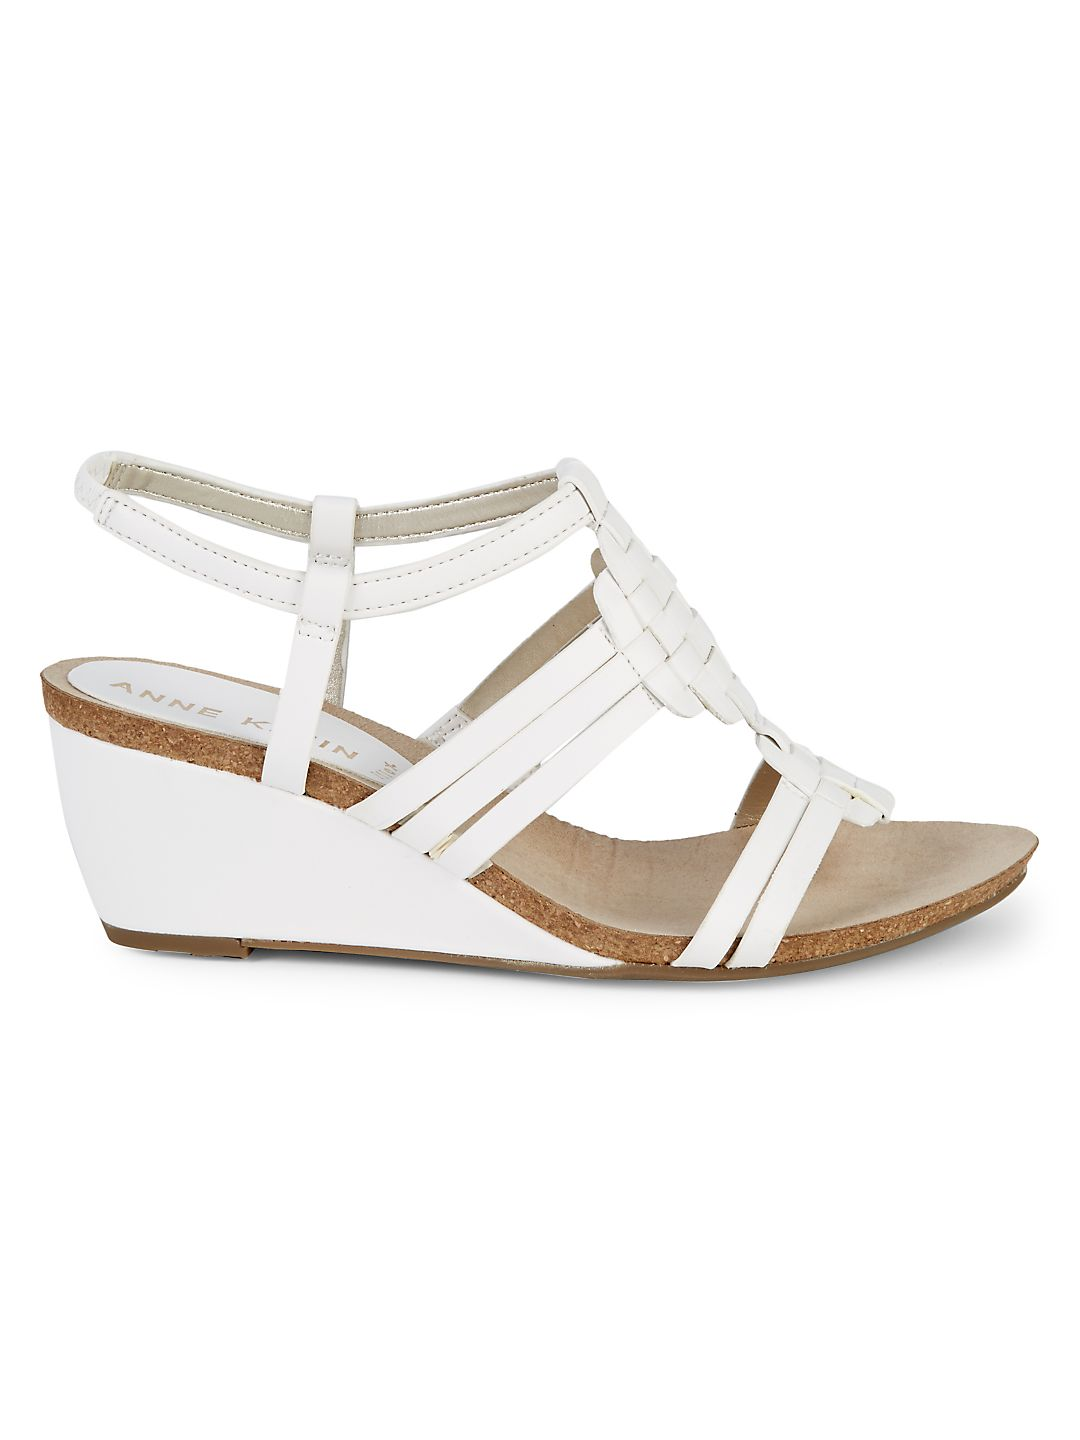 Tilly Stappy Wedge Sandals